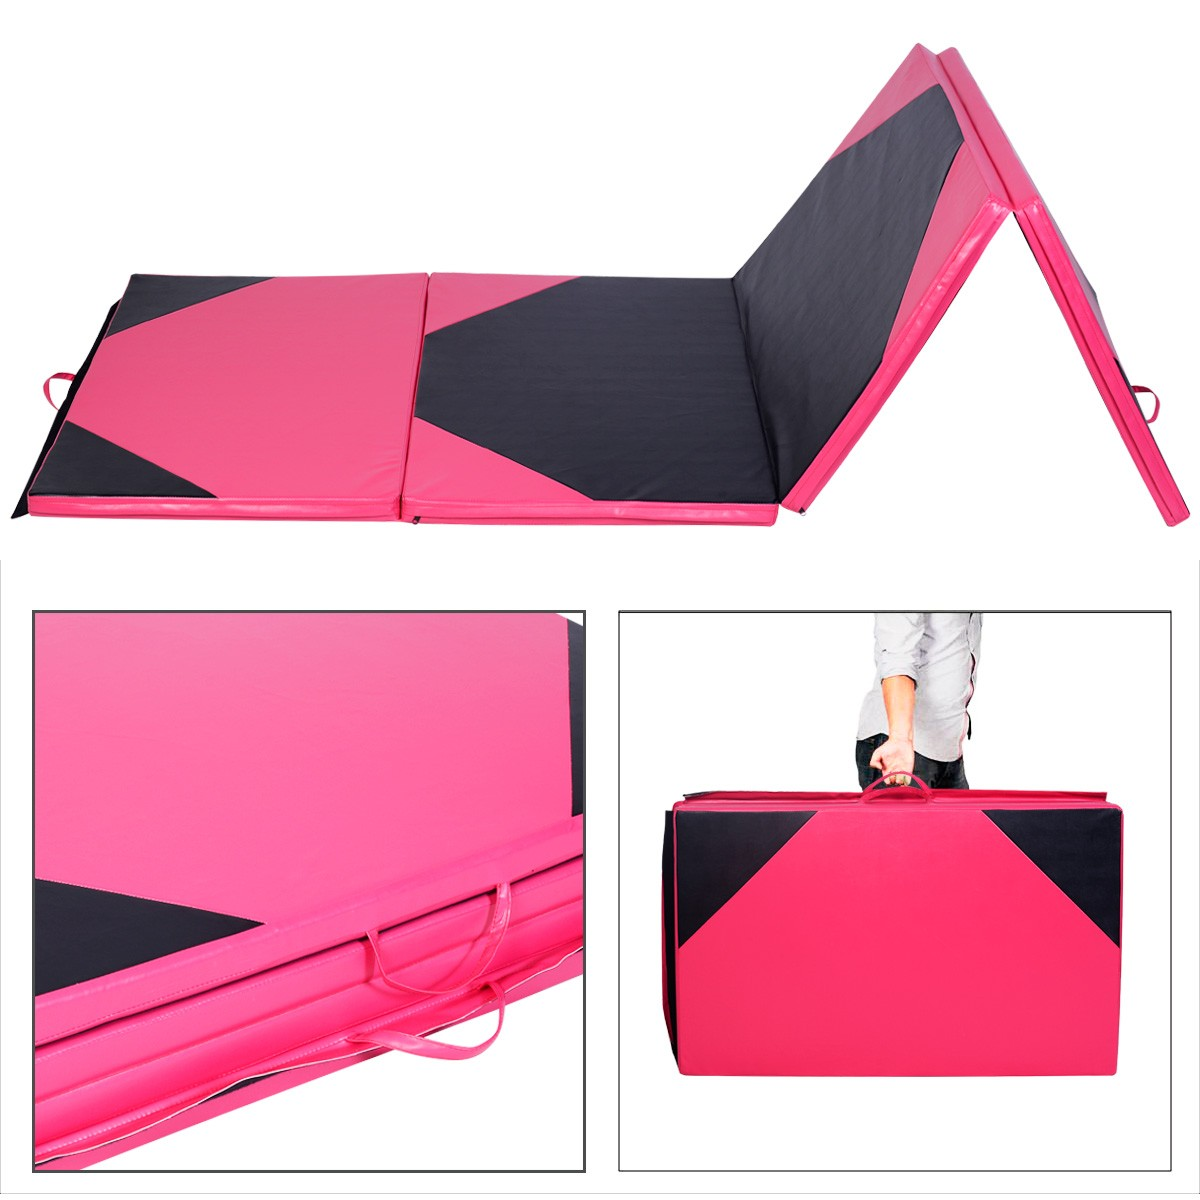 lets exercise with do stylish mats mat using for home ideas gymnastic best gym folding wedge gymnastics room